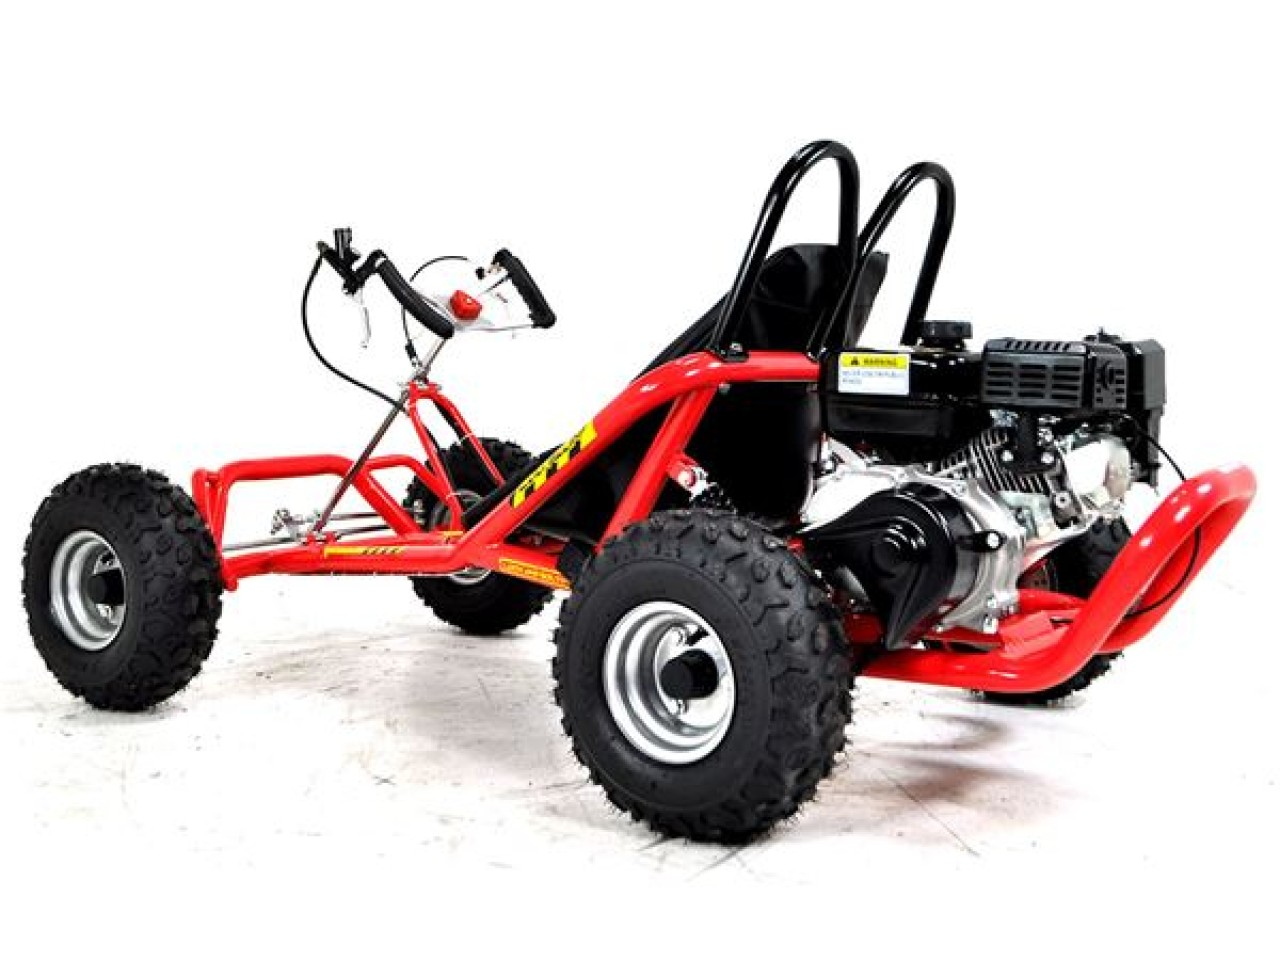 Drift Kart Buggy BEMI 160cc OHV 4T Monster adulti